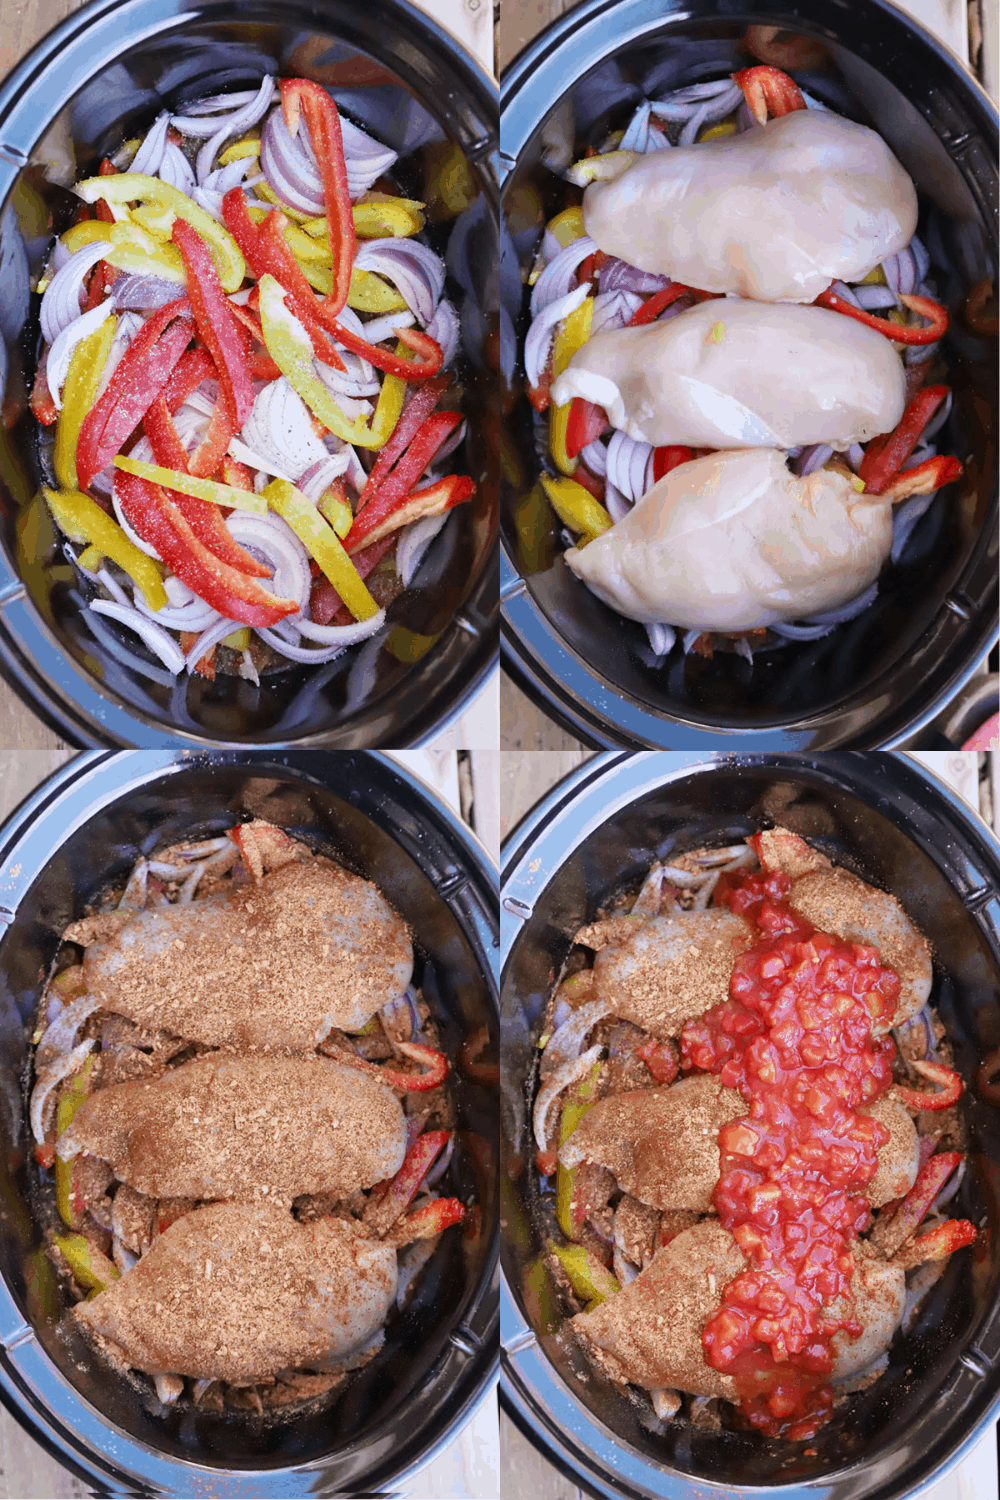 Four pictures showing the steps for making Slow Cooker Chicken Fajitas.